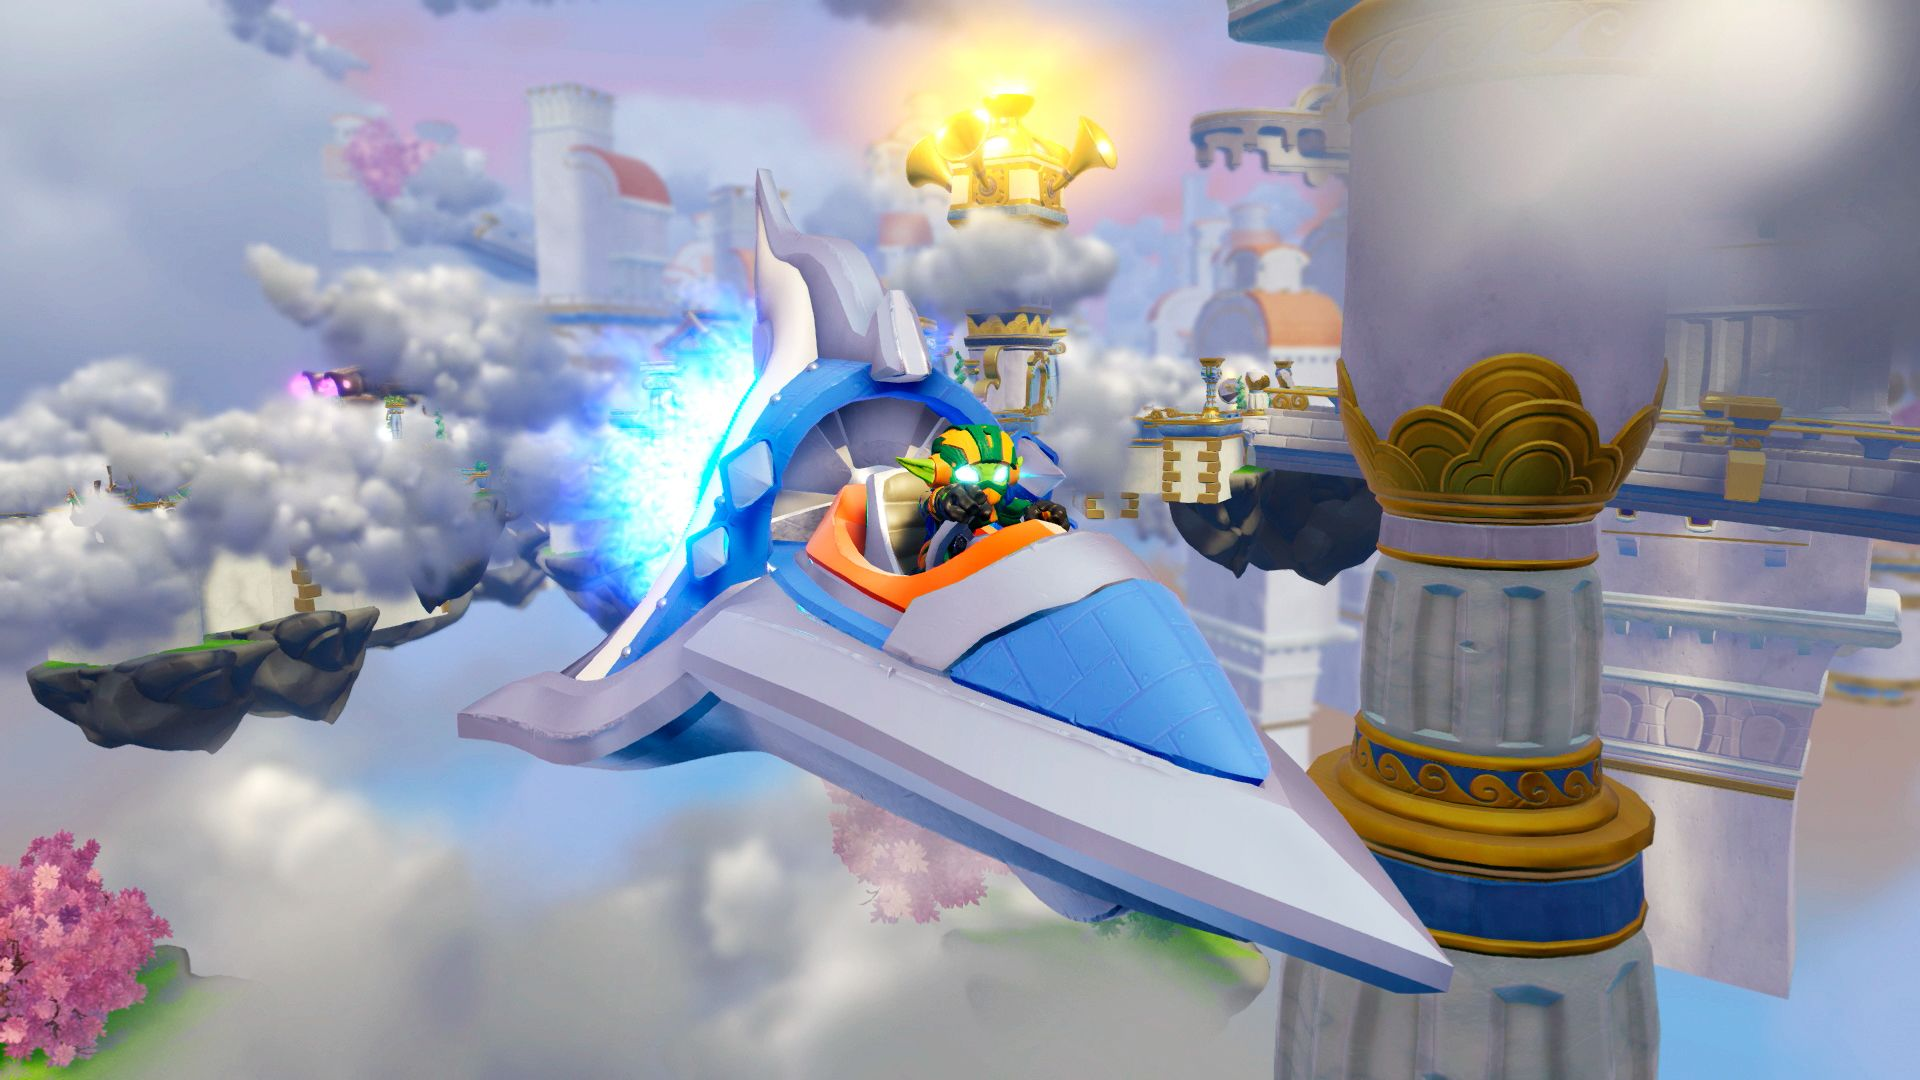 Skylanders: SuperChargers - now bringing vehicles to life